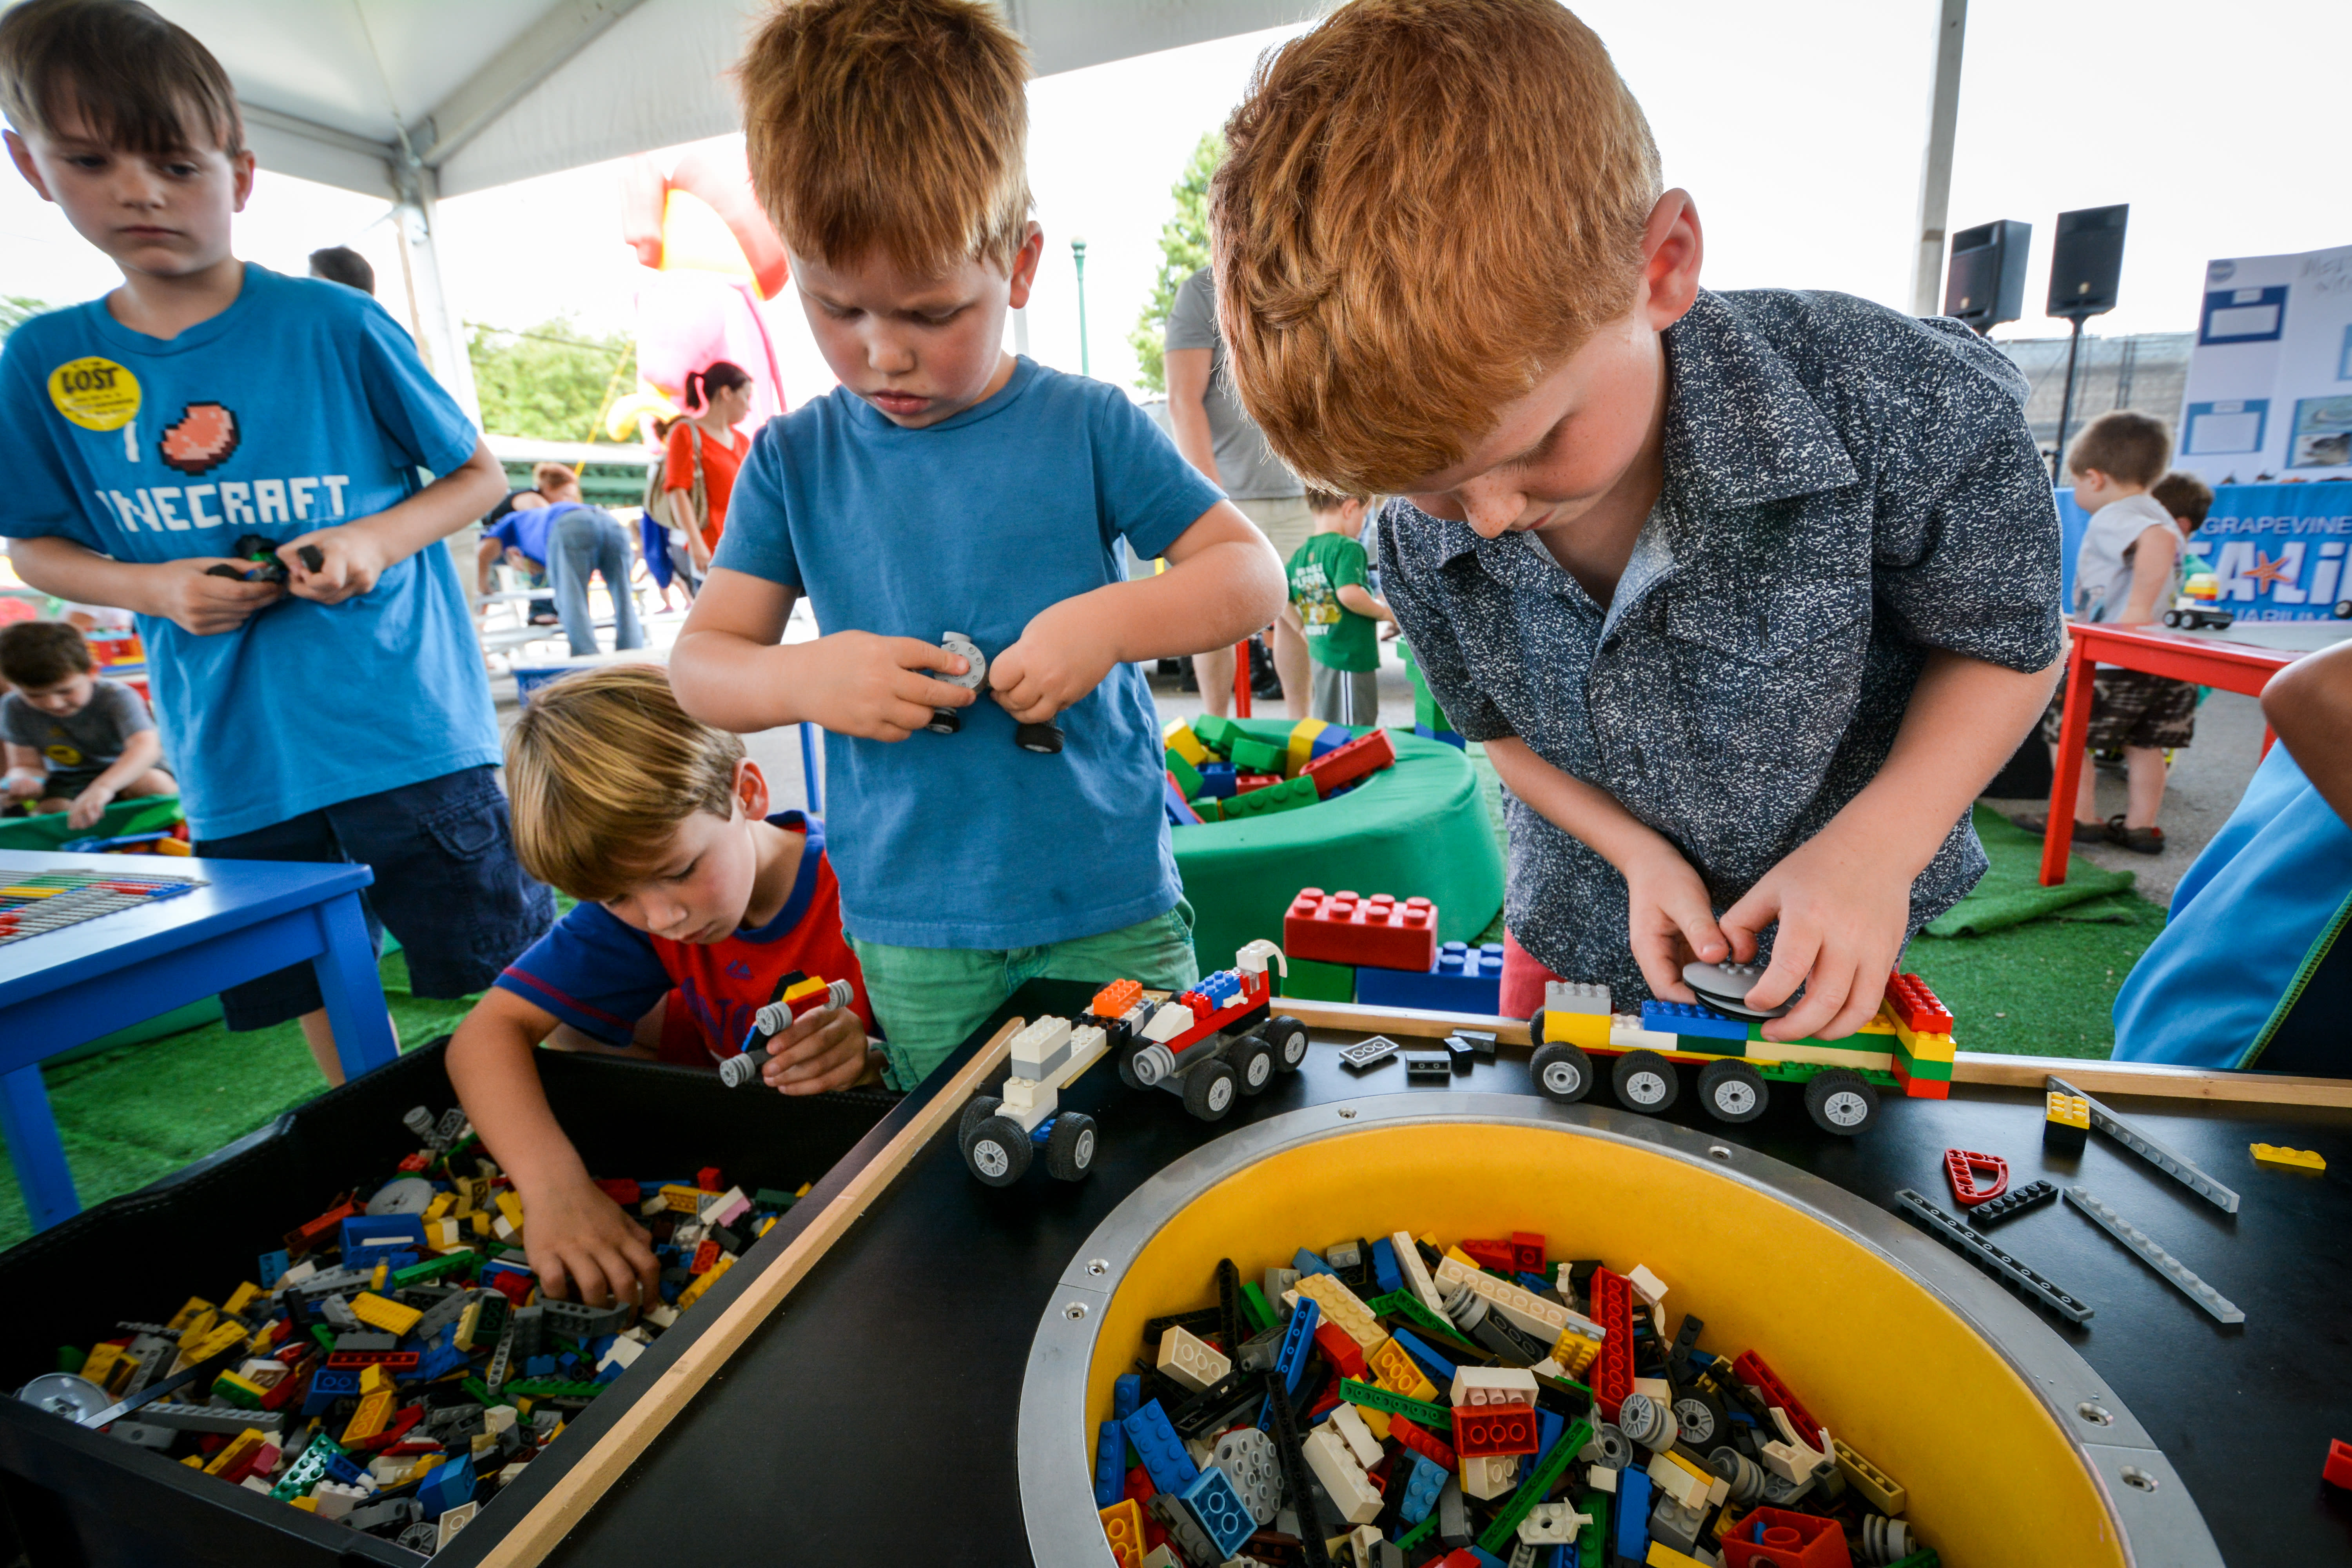 Kids Played with Legos at KidsWorld